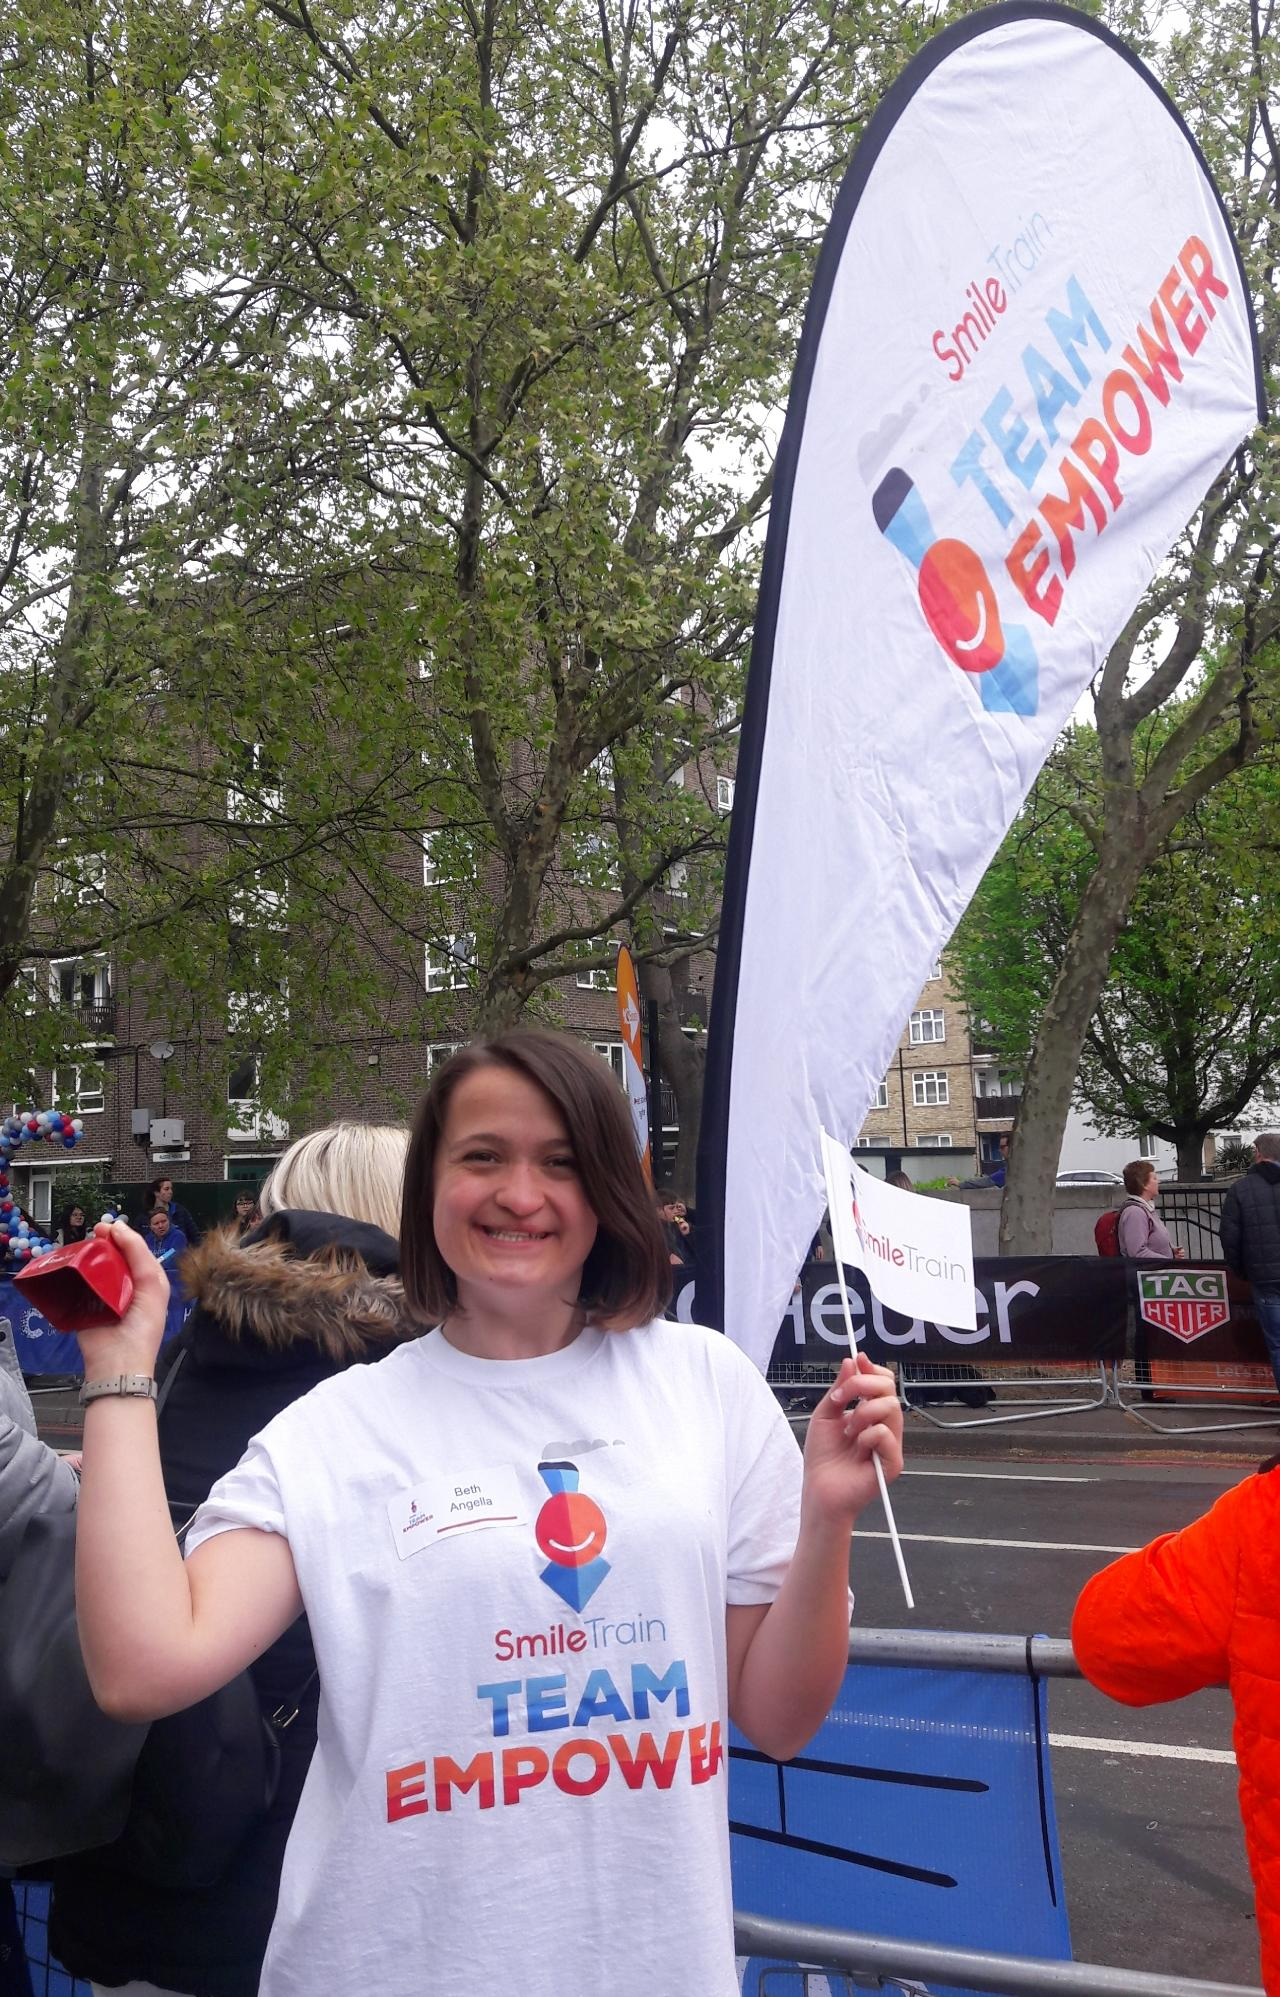 Cheering the London Marathon in 2019